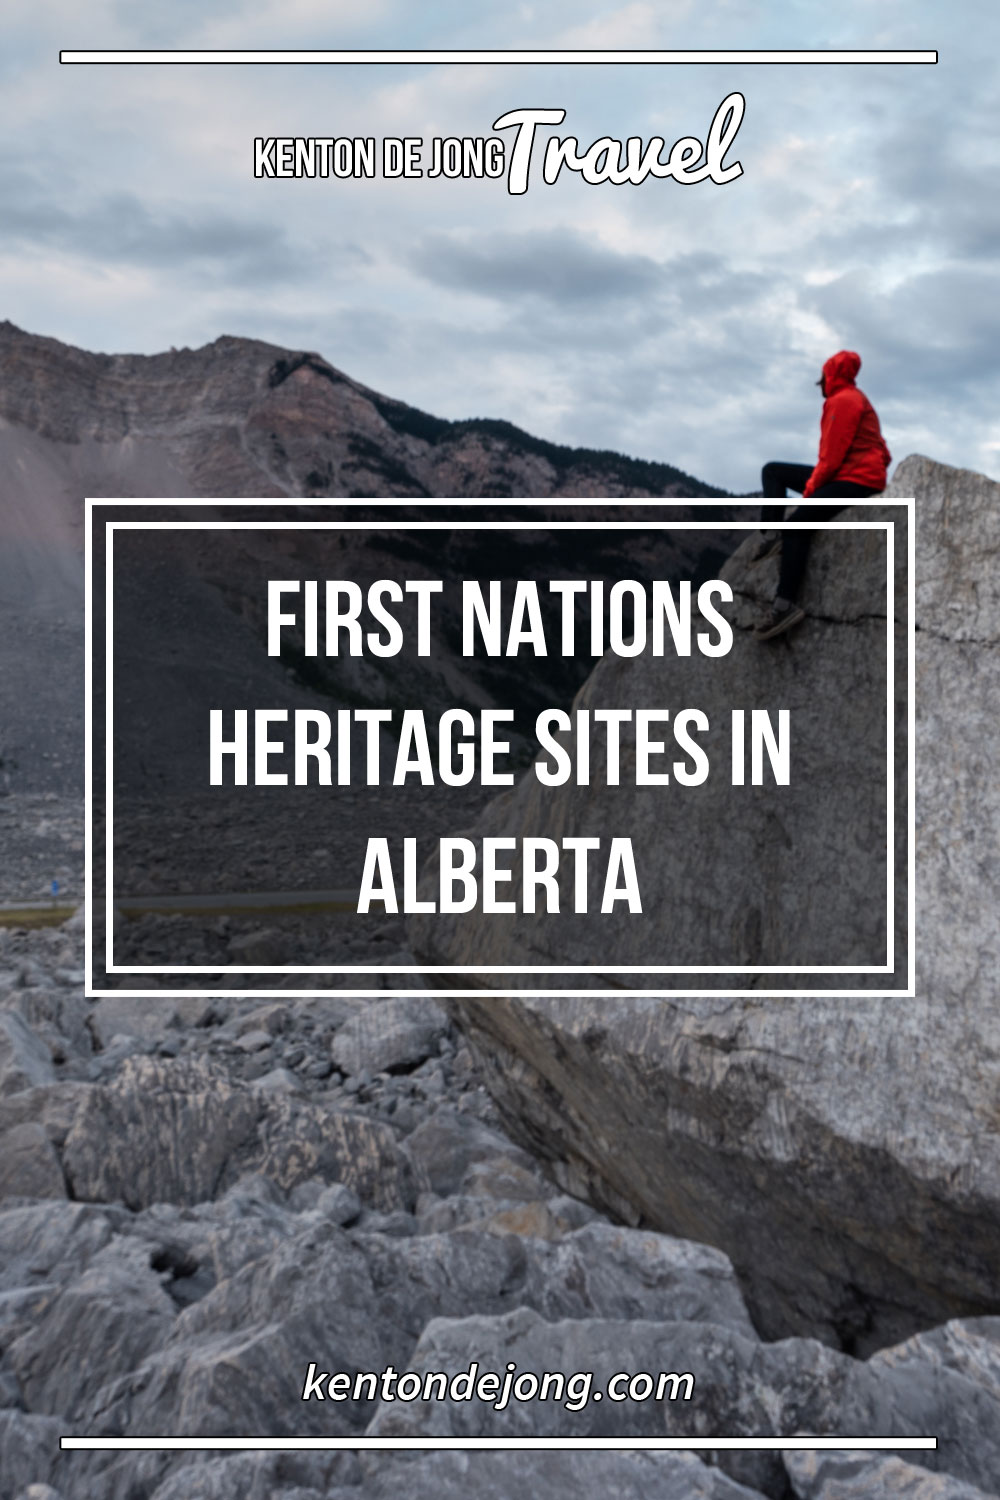 First Nations Heritage Sites in Alberta